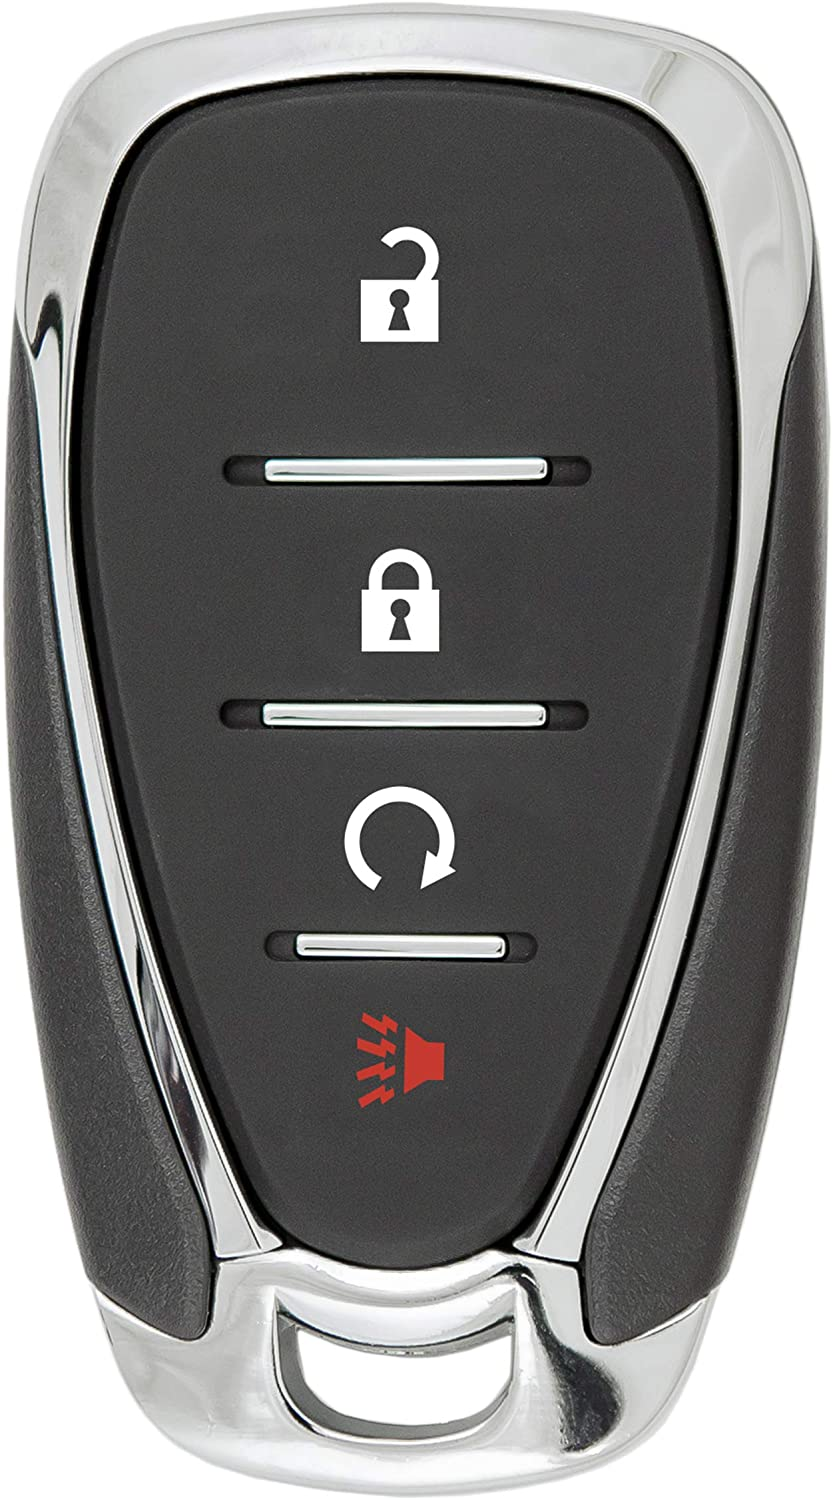 Keyless2Go Replacement for 4 Button Proximity Smart Key for Chevrolet HYQ4EA 13585728